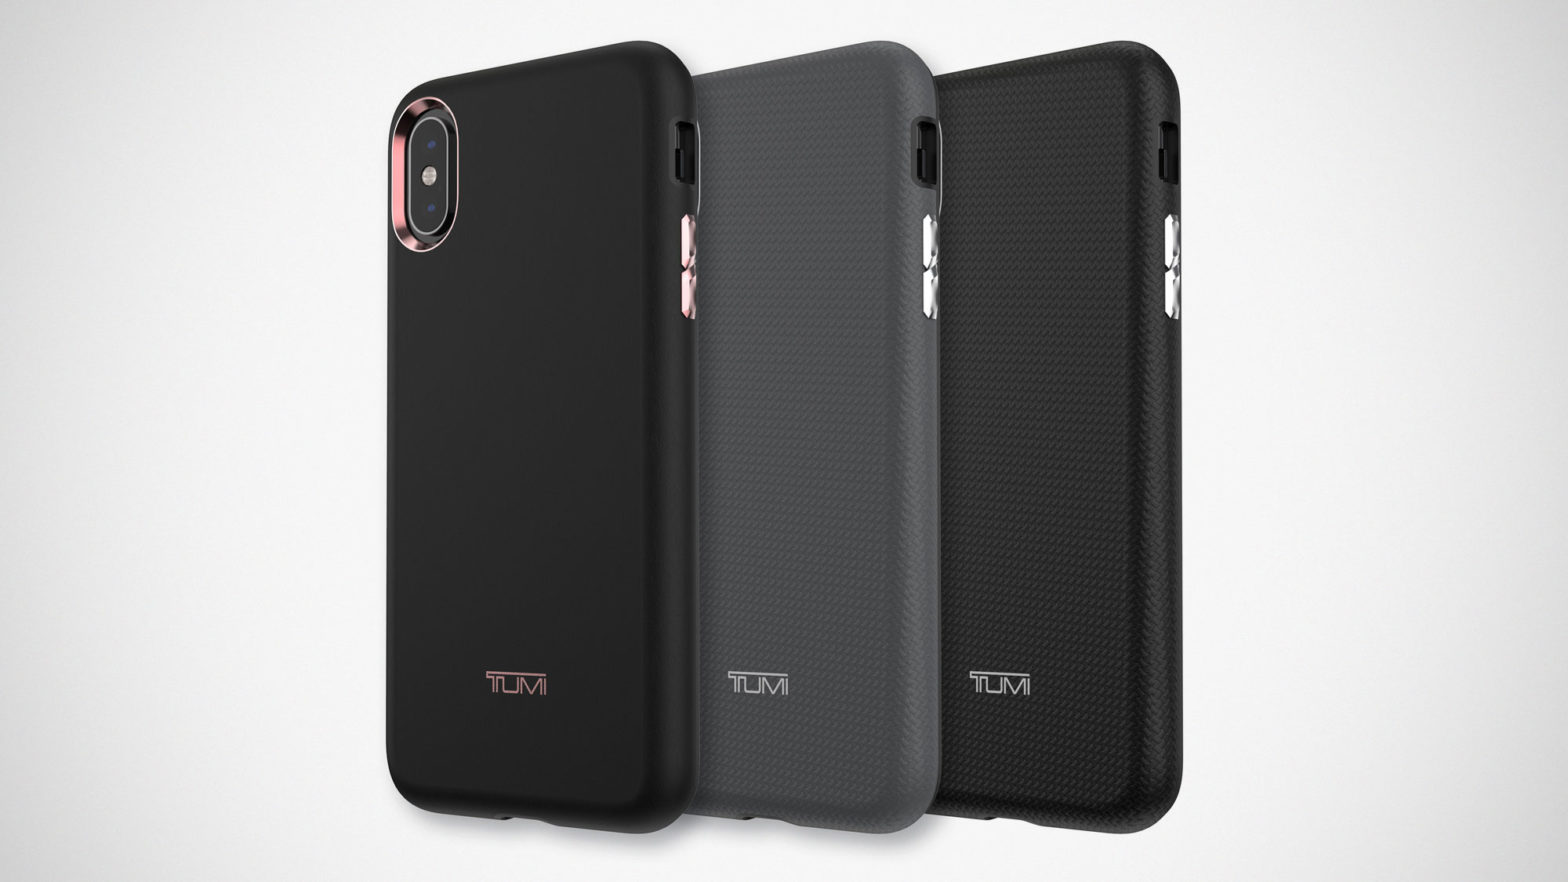 TUMI x Speck iPhone Cases